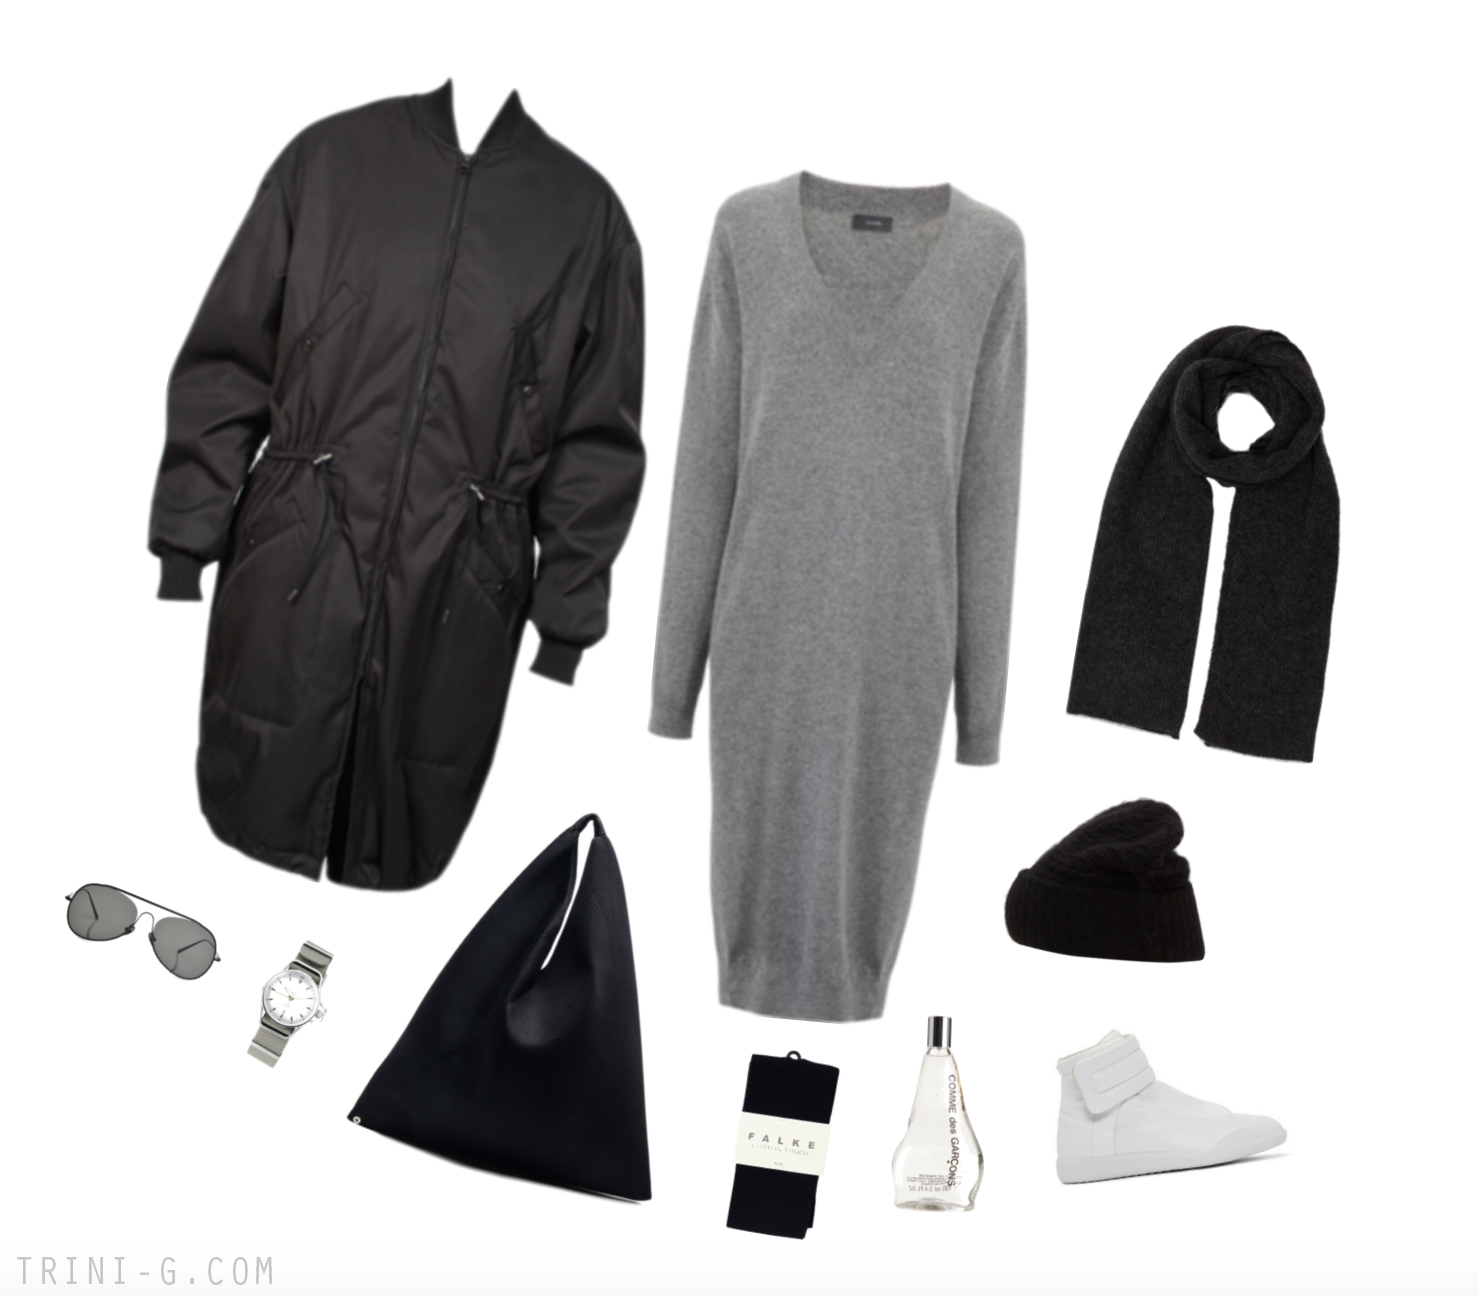 Trini Blog | Joseph sweater dress Maison Margiela sneakers